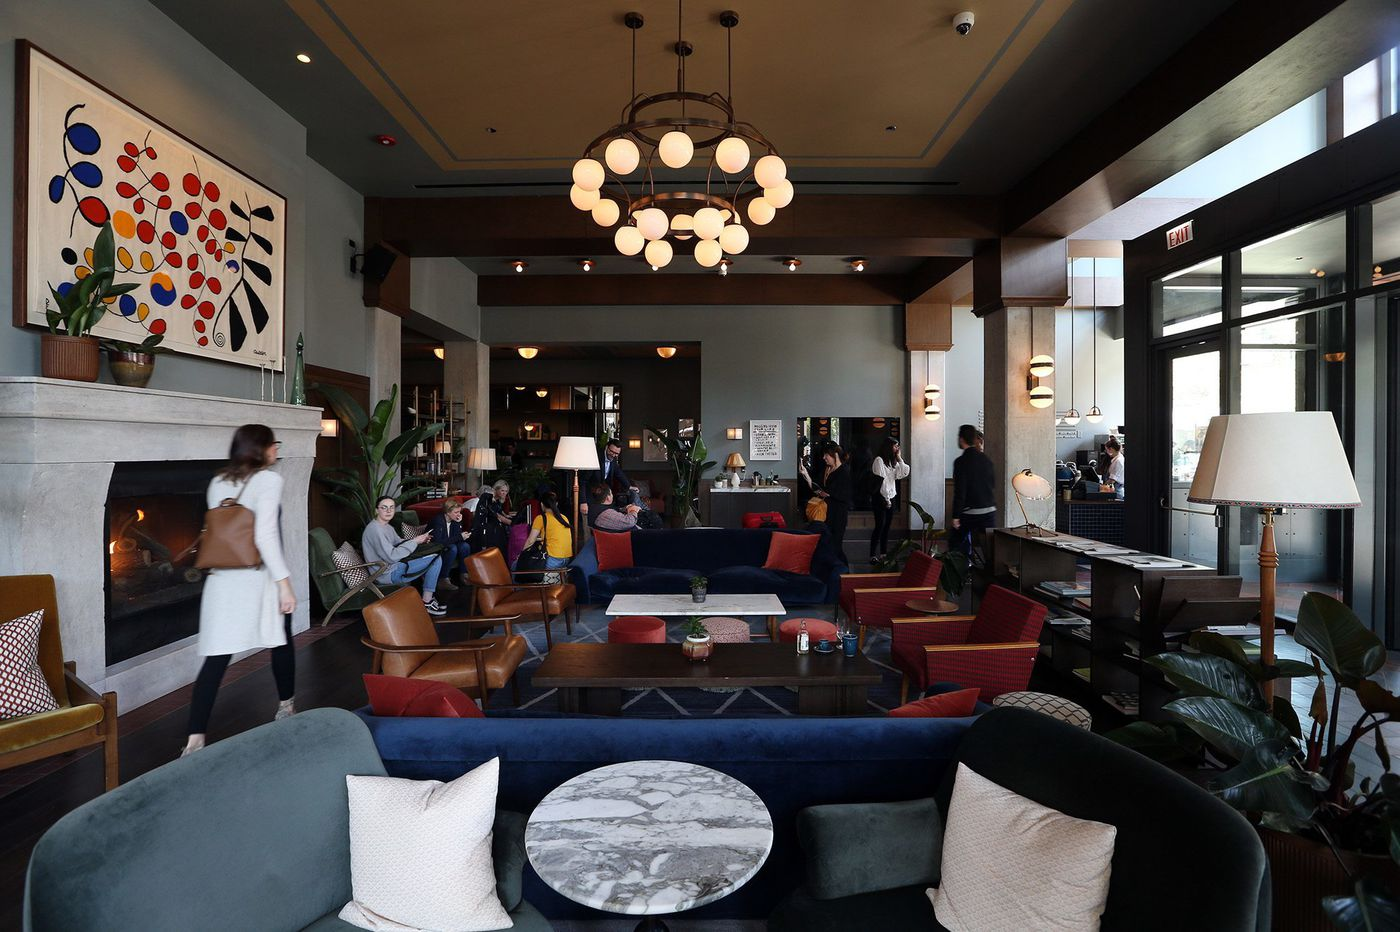 Hotels turned their lobbies into a social hub. Then came the coronavirus.